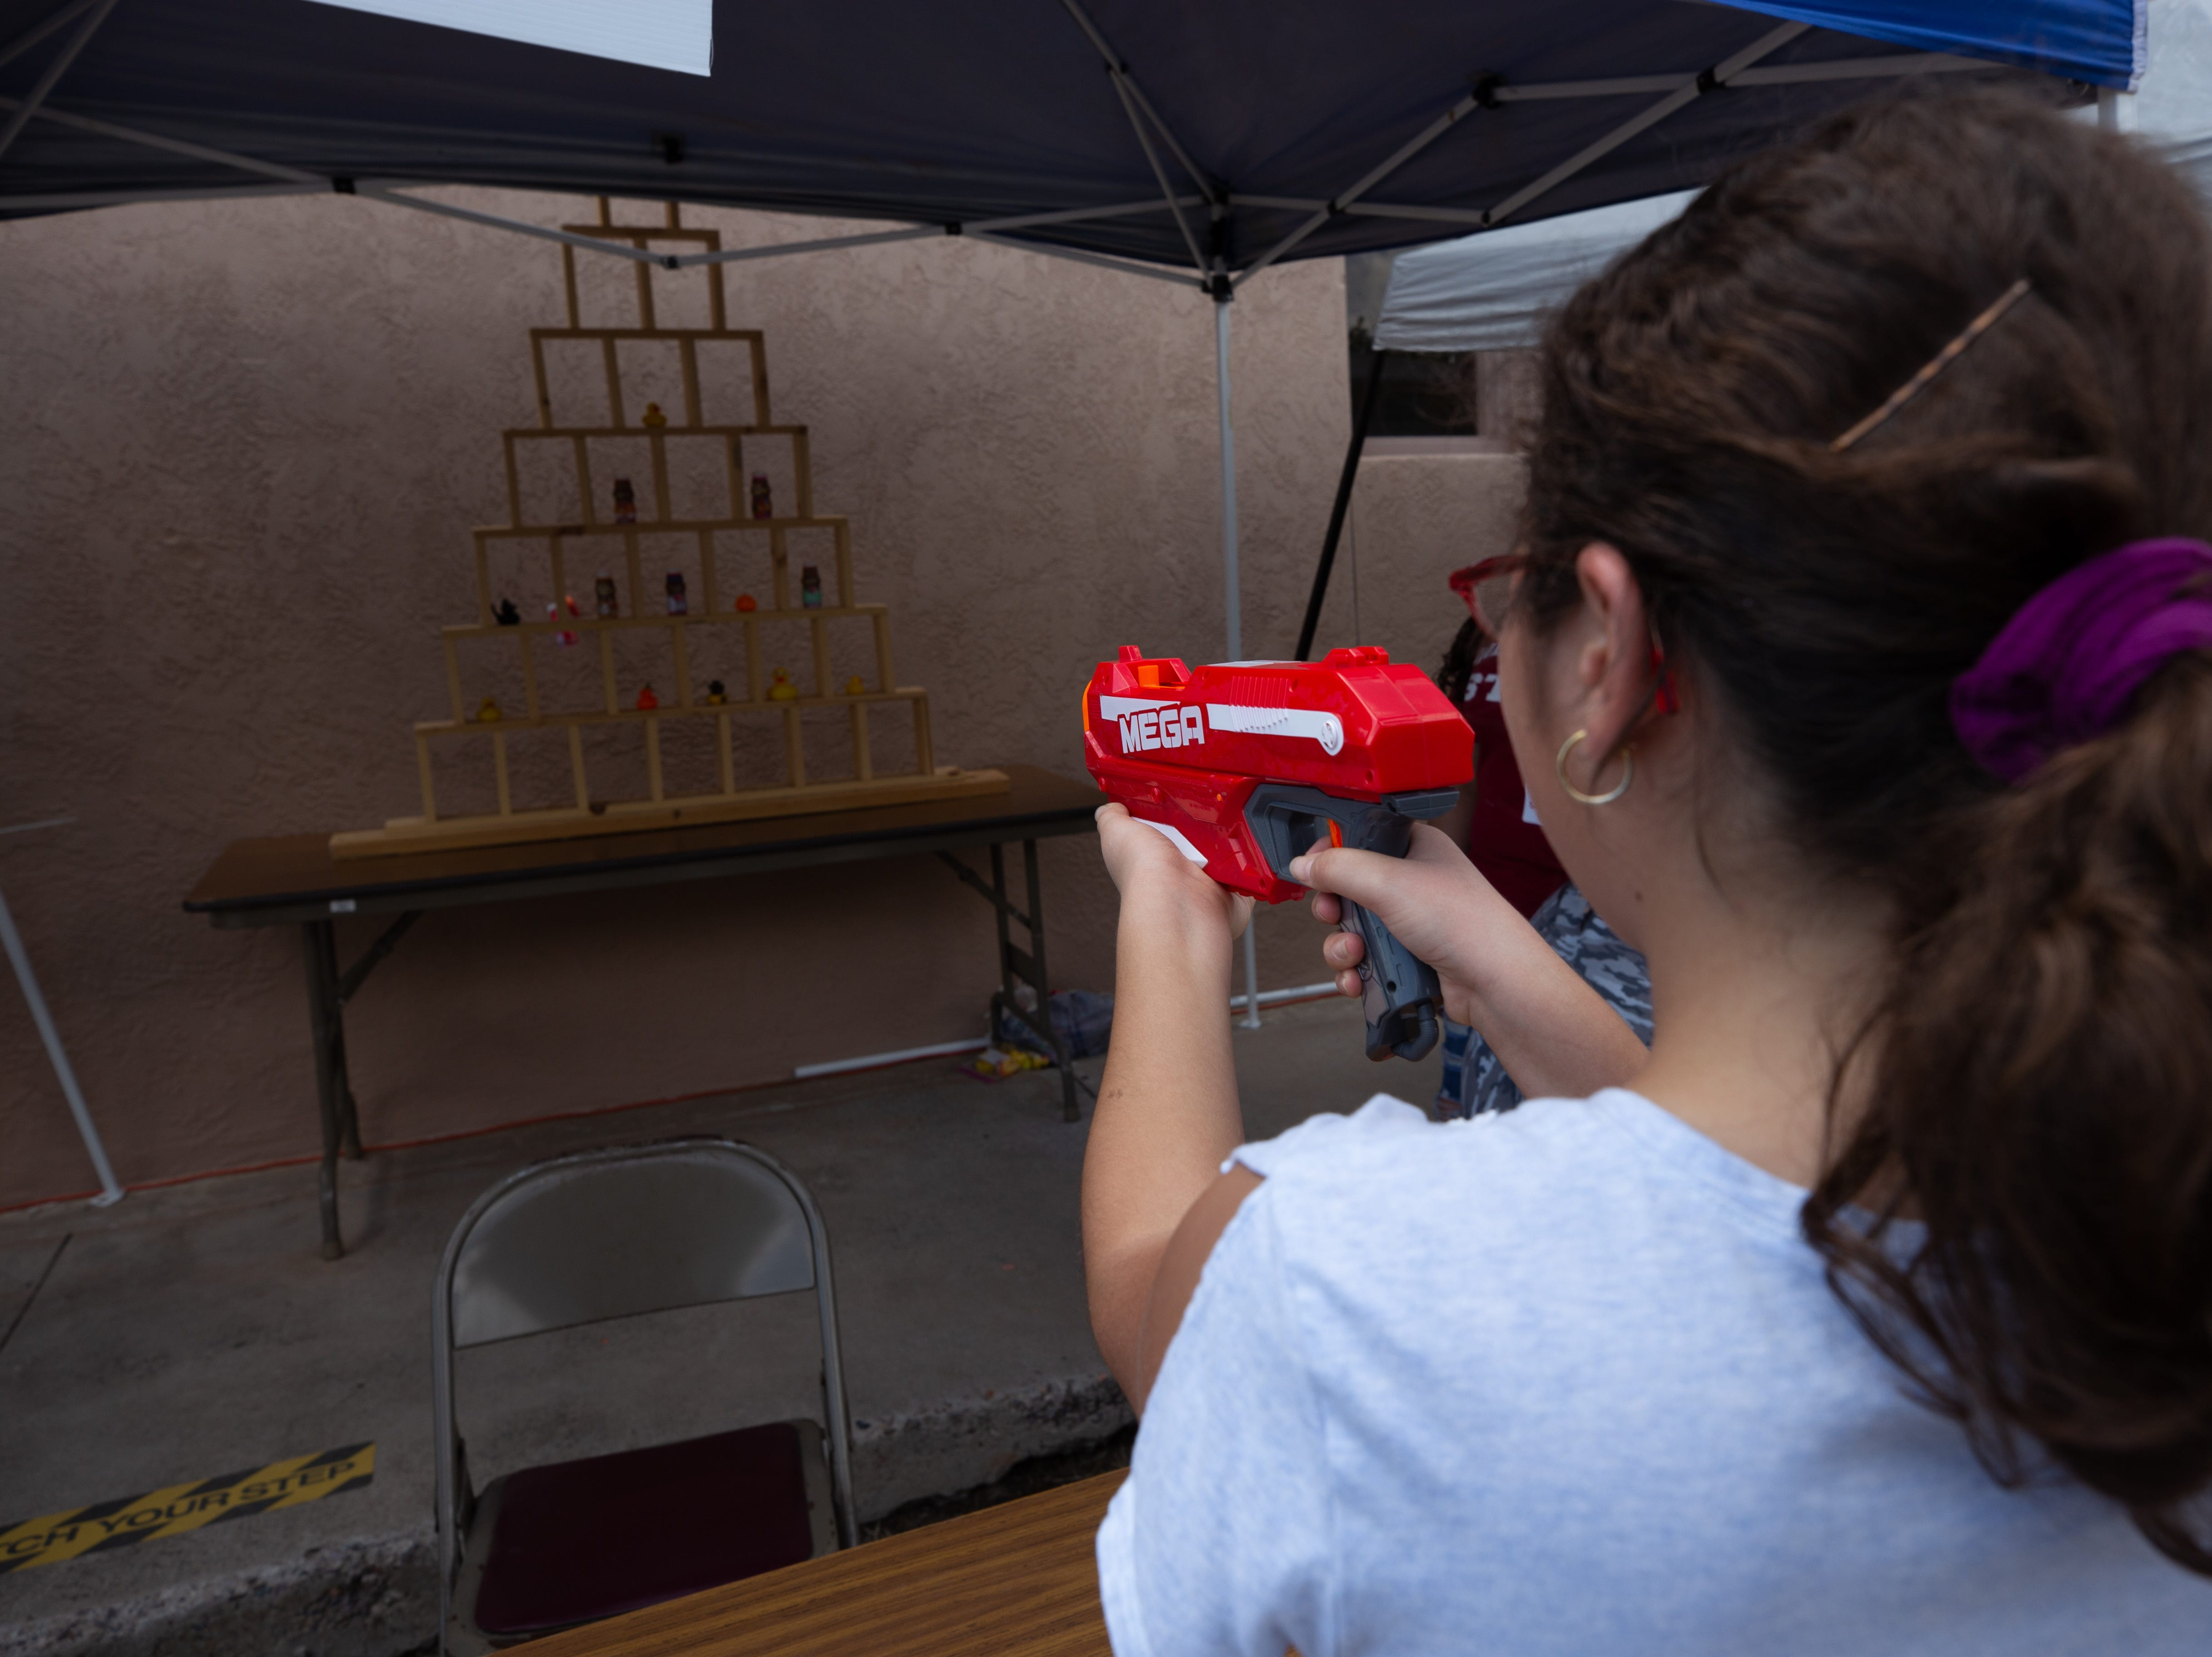 Sara Schmitz, 12, takes aim with her dart gun at the prize wall during the St. Genevieve Fiesta on Saturday, Sept. 8, 2018.